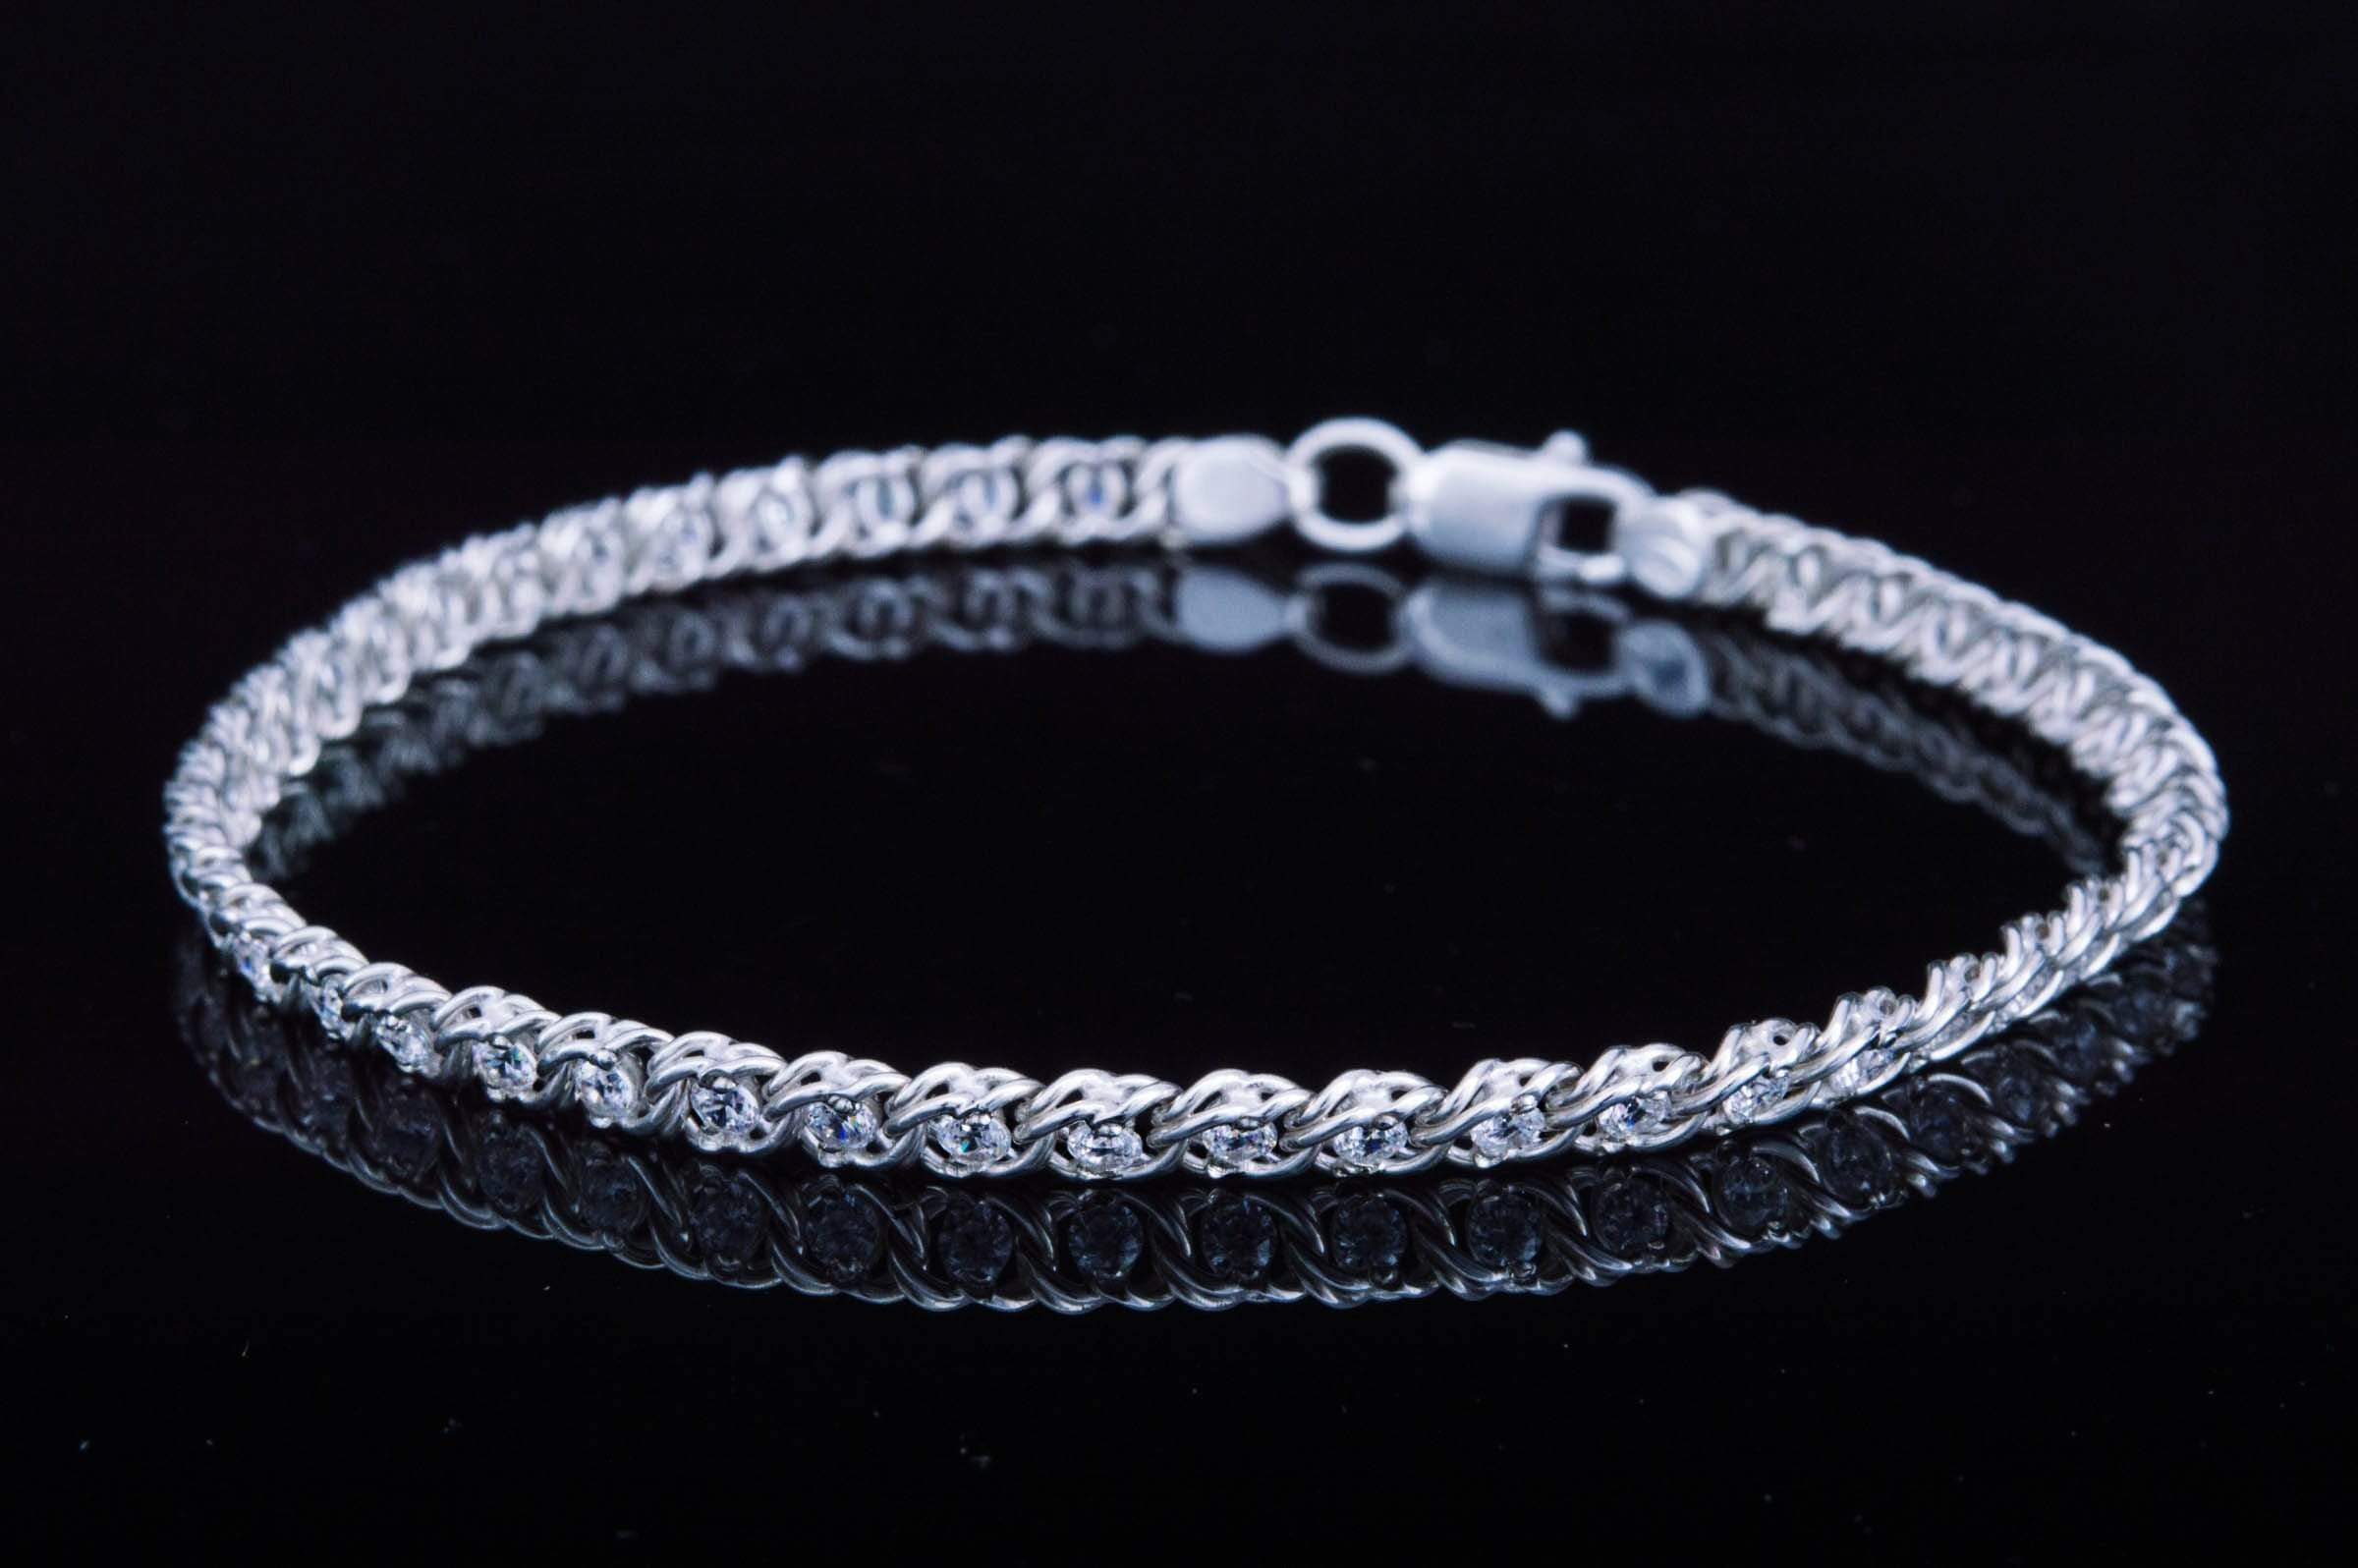 Ancient Smithy VW jewelry Handmade Bracelet with White Cubic Zirconia Sterling Silver Jewelry